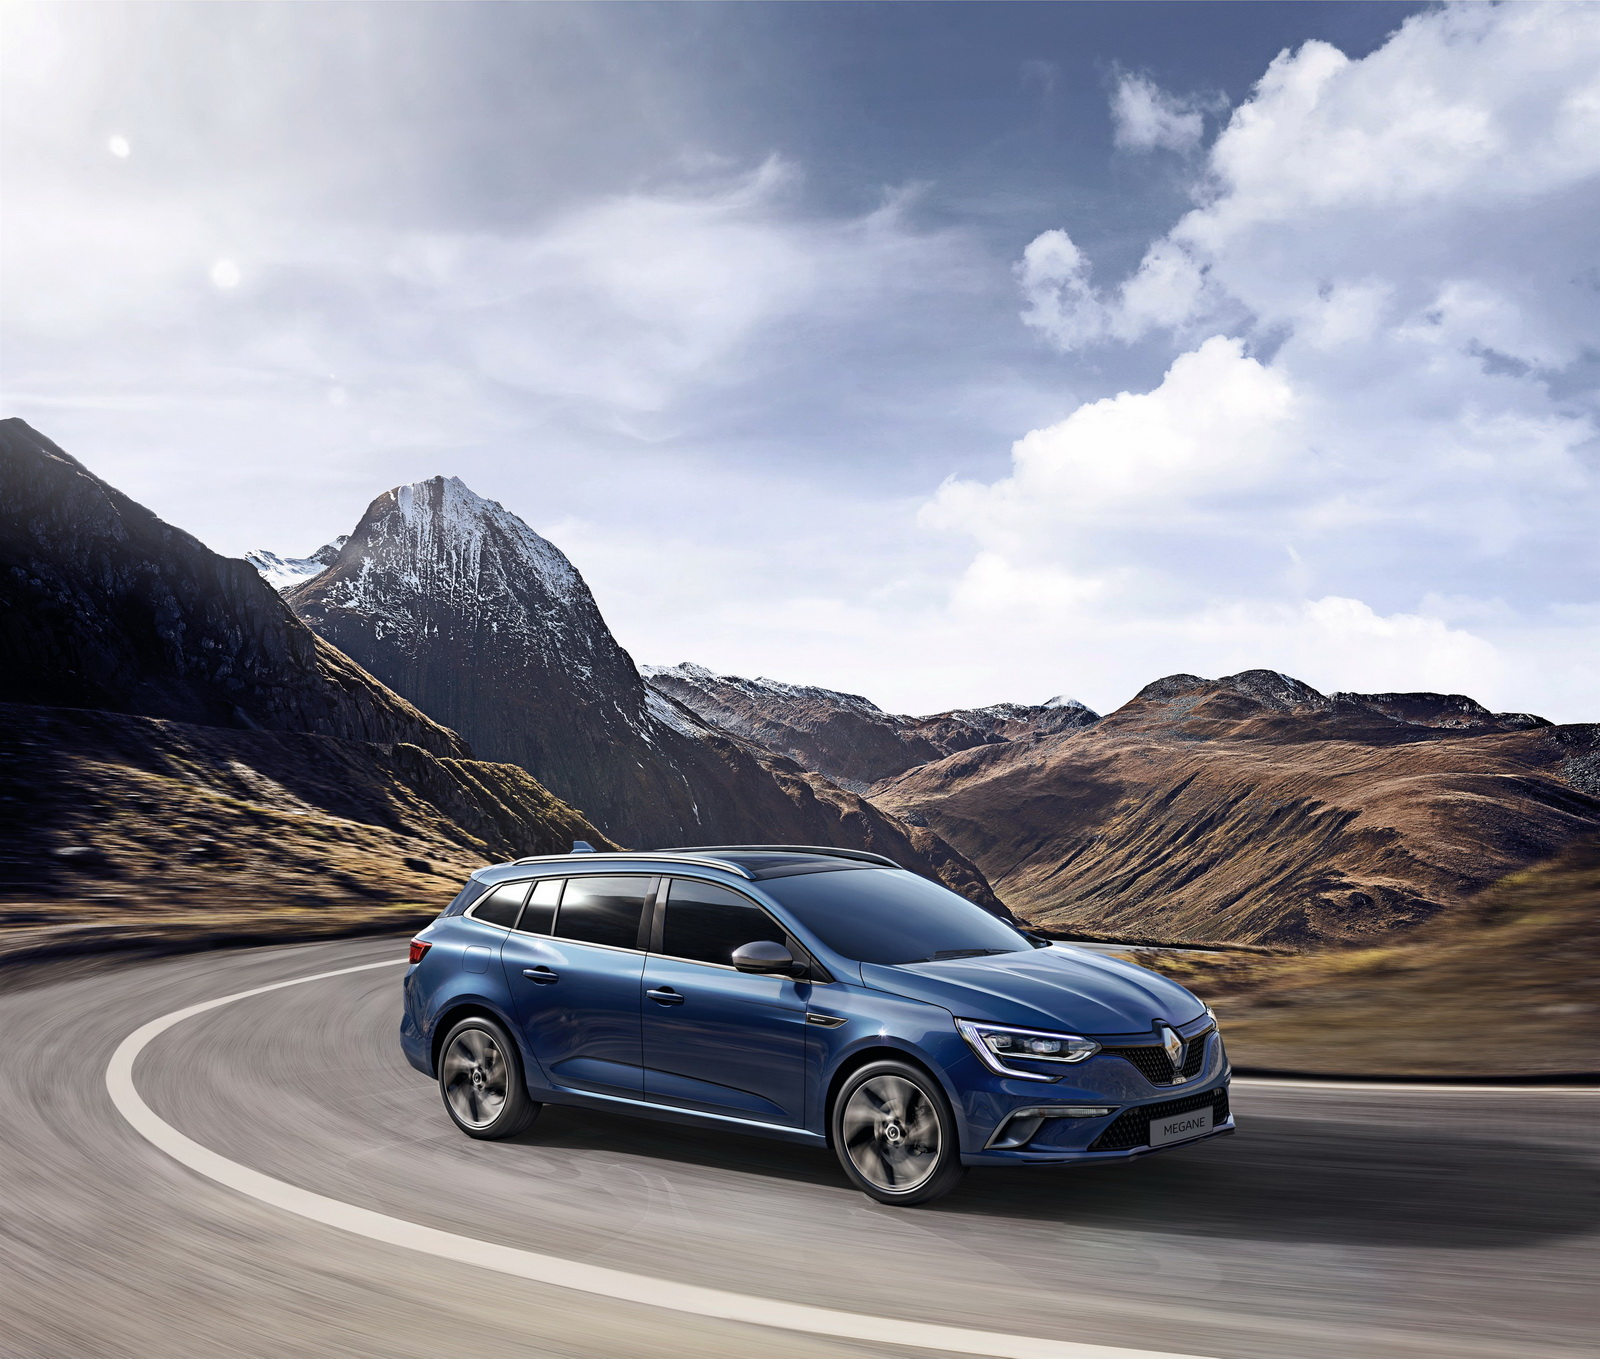 New Renault: New Renault Megane Estate Analyzed In 99 Photos